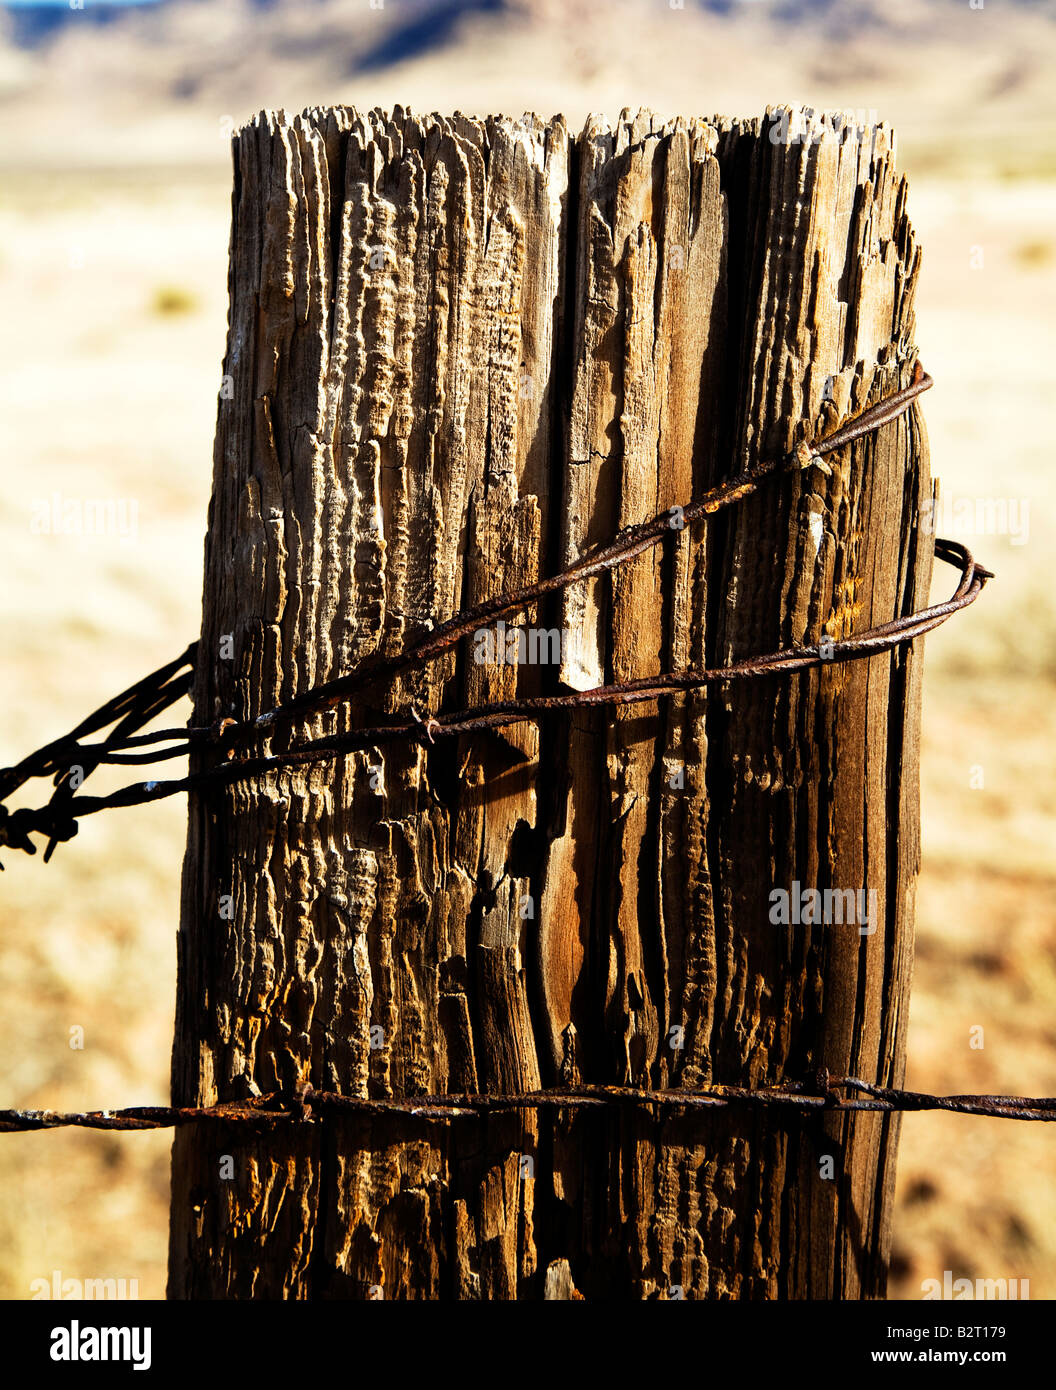 Wooden Fence Post Rusty Barbed Stock Photos Amp Wooden Fence